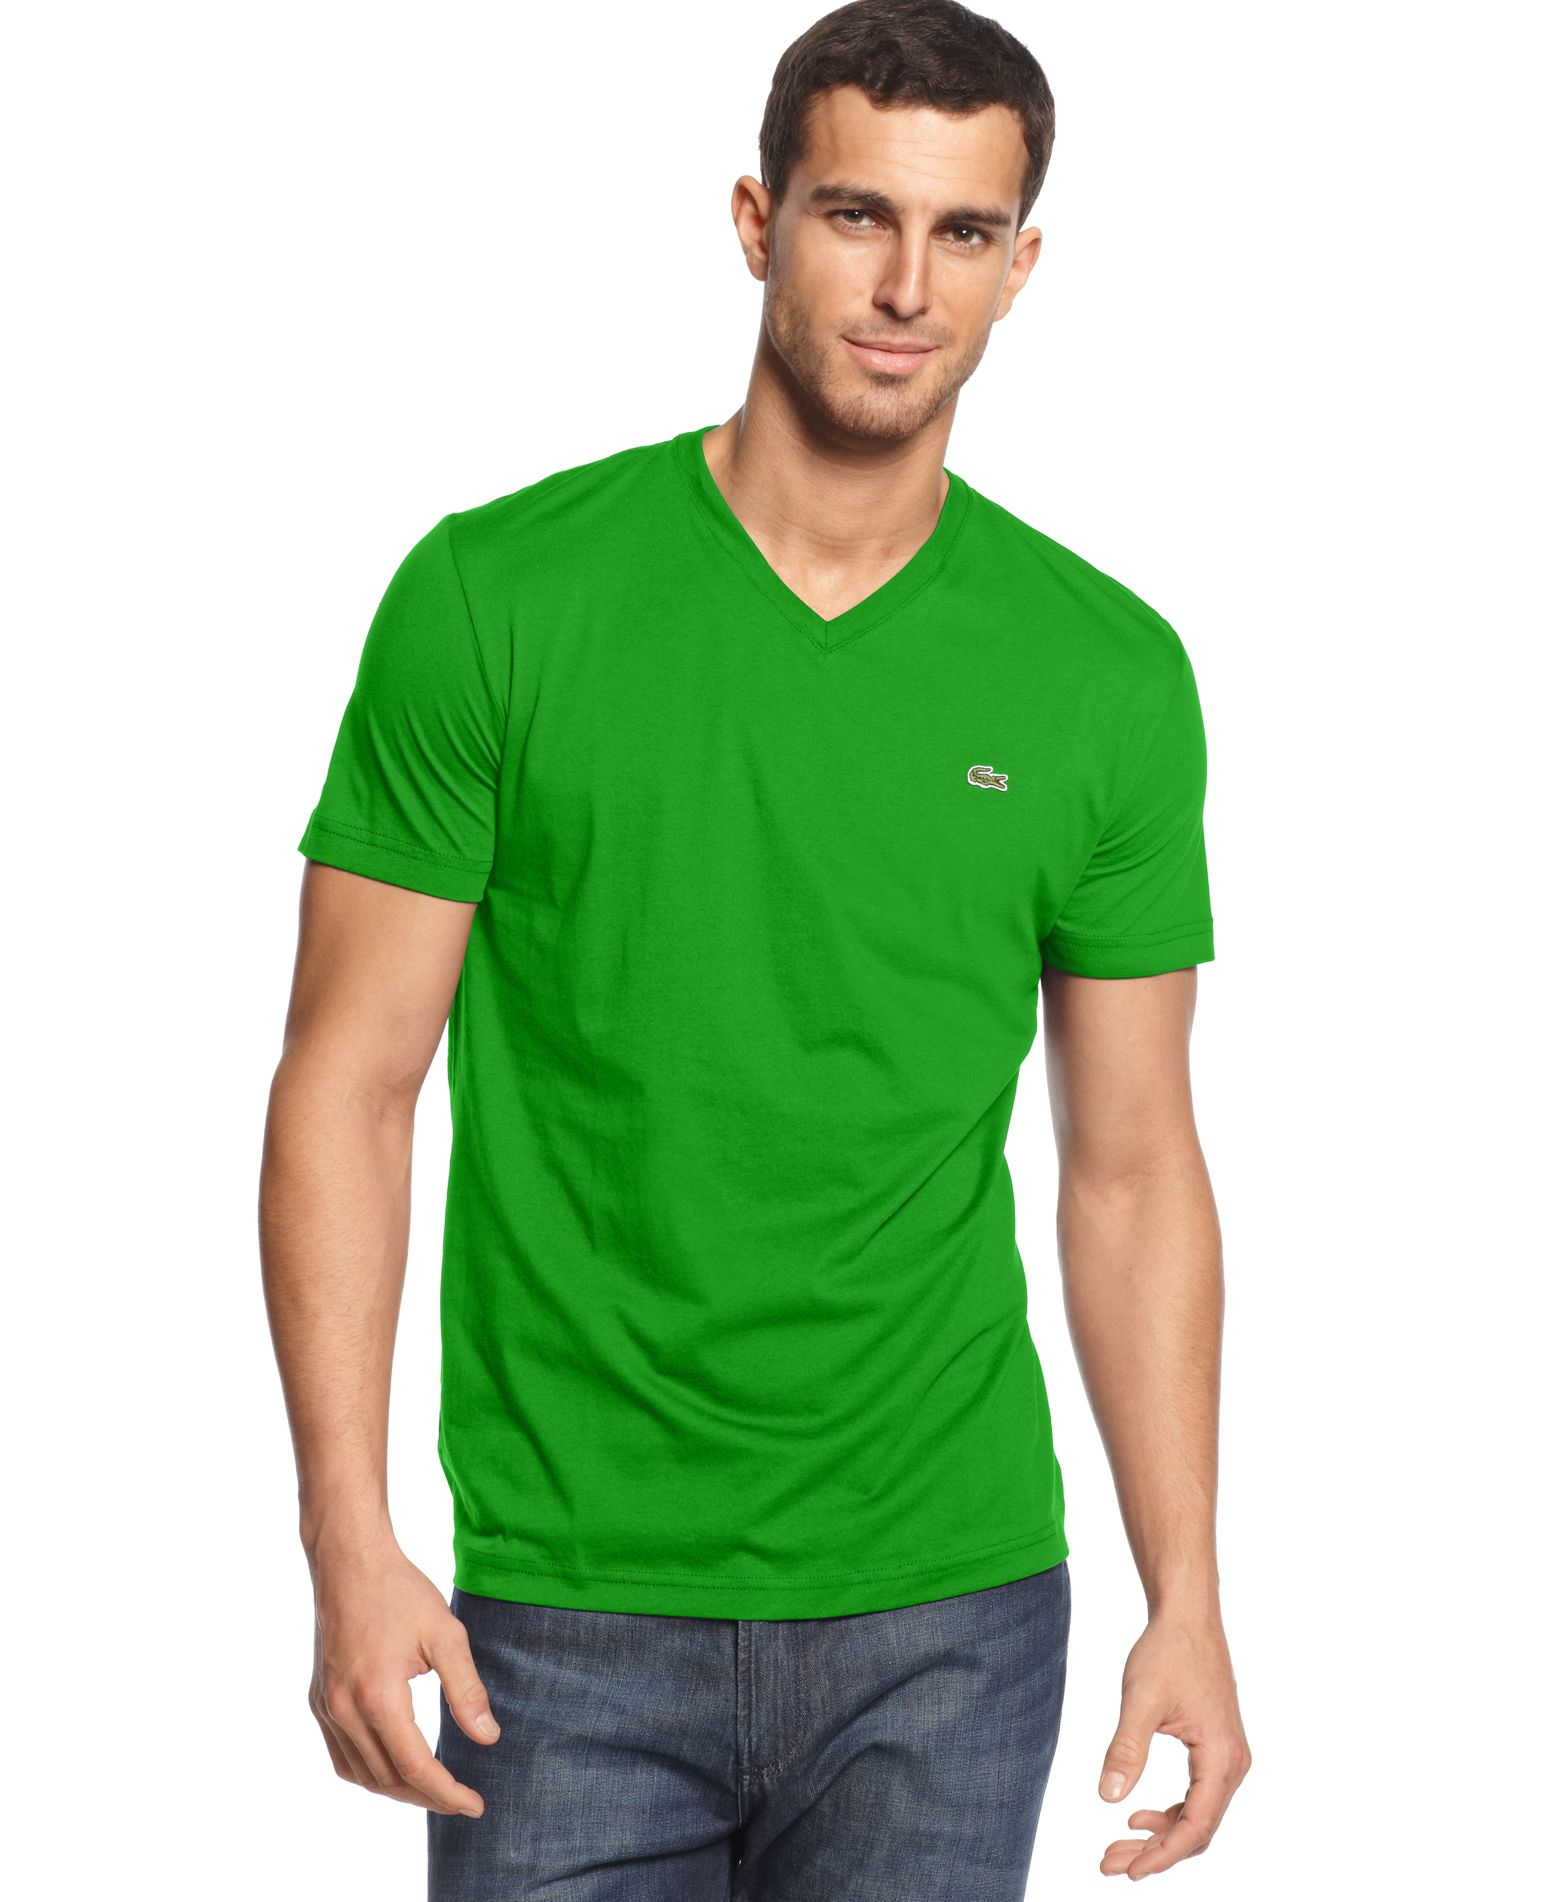 Lacoste core v neck pima cotton jersey t shirt in green for Green mens t shirt